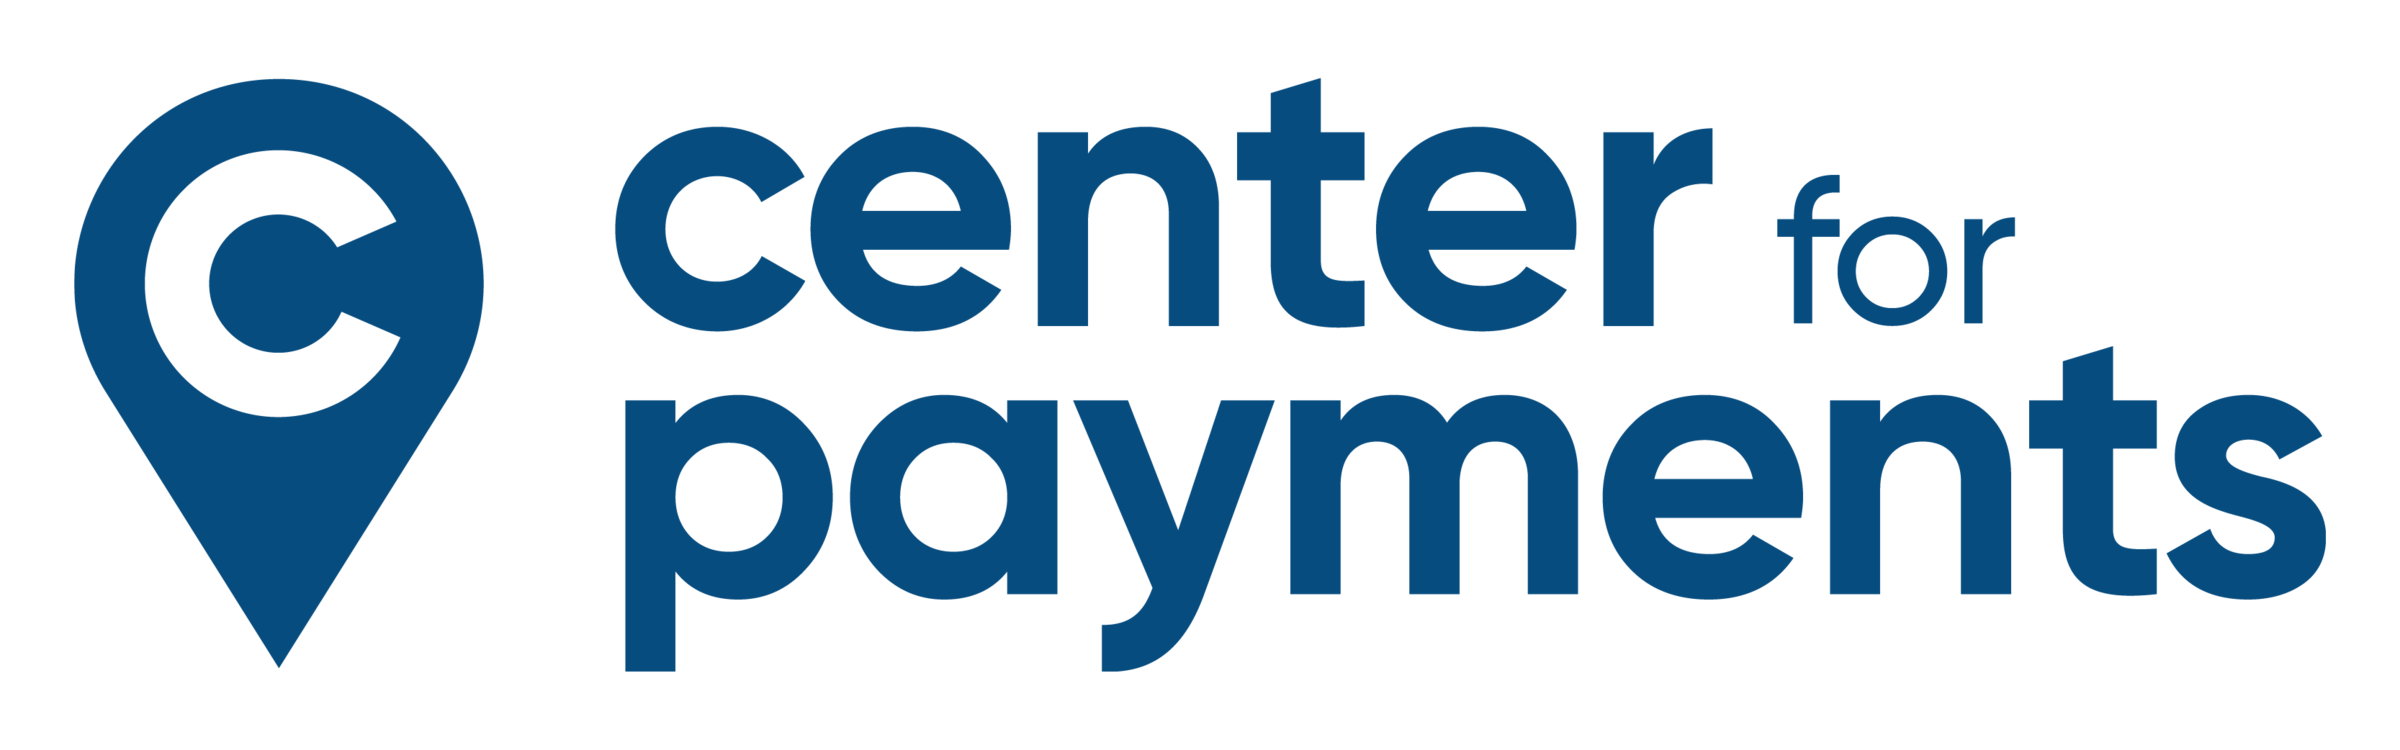 Center for Payments logo on transparent BG